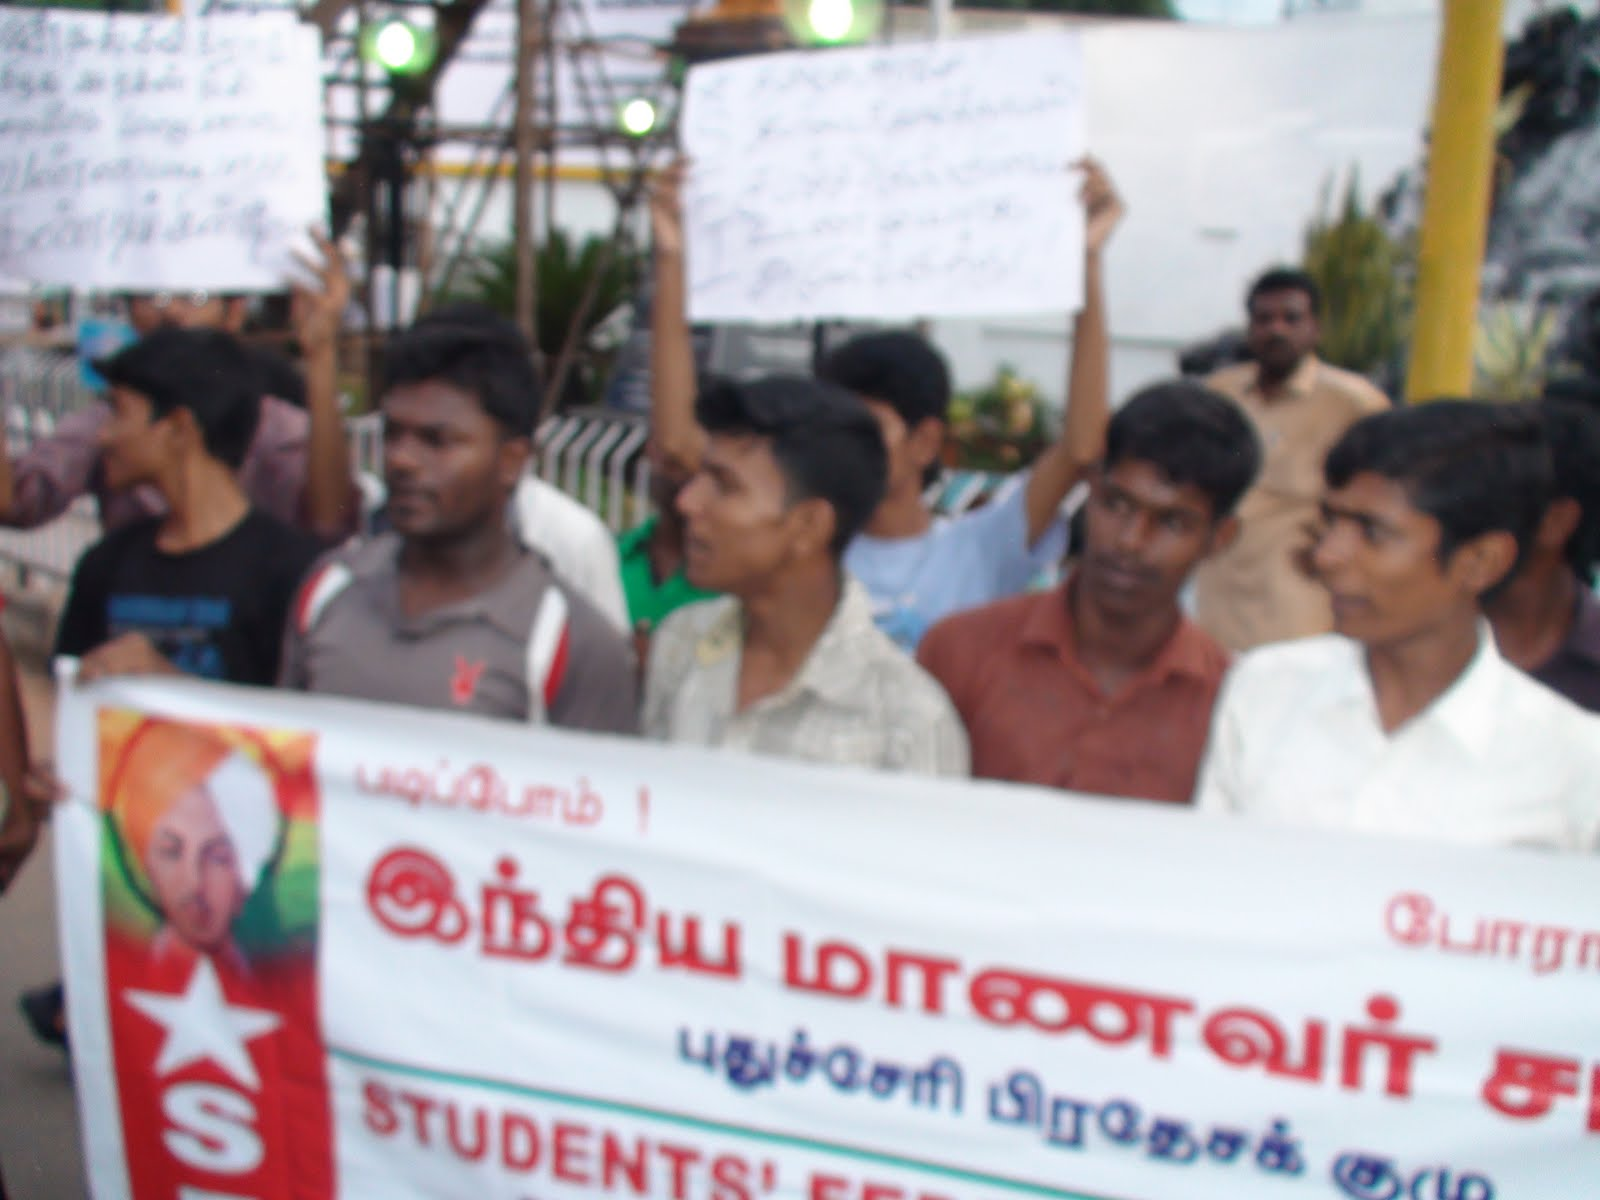 sfi students federation of india Students' federation of india sfi calls upon the students of jnu to rally with the left-democratic and progressive forces in standing in complete solidarity.